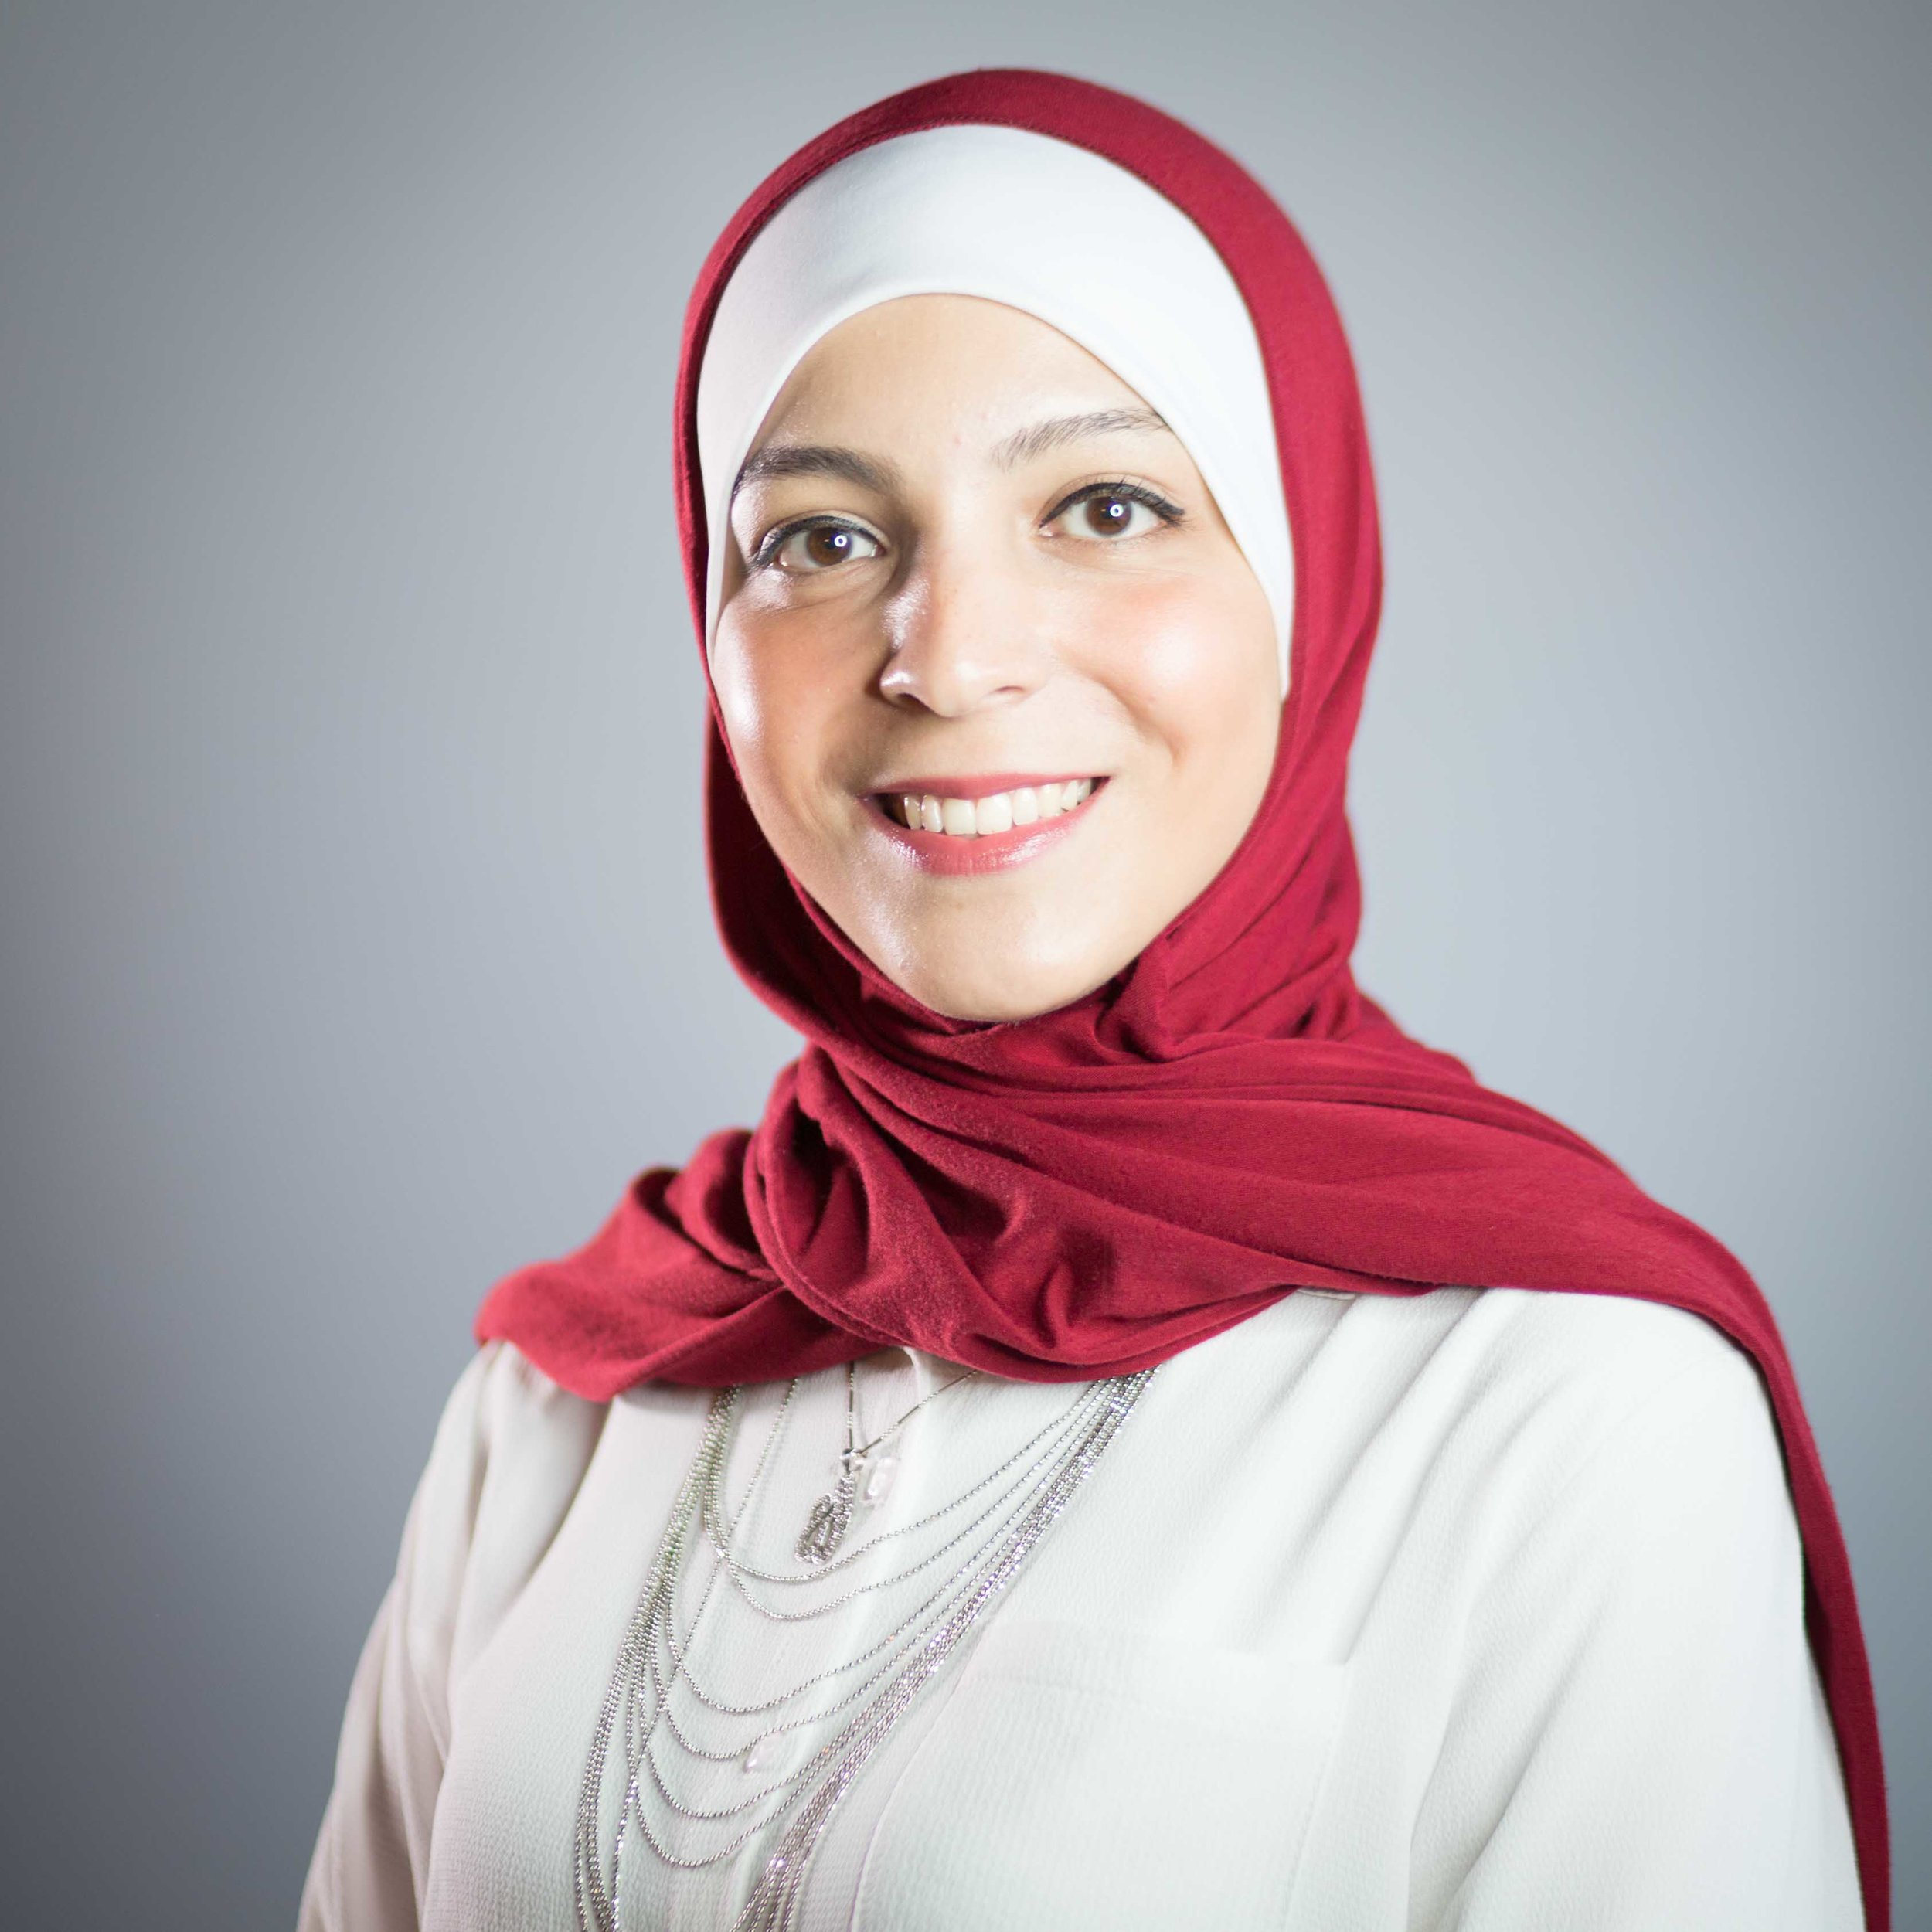 CV in brief:  🎓 Education:  BSc in Computer Engineering at  Al-Jami'ah Al-Urdunia  (Jordan)  💻 Follow Diana online:   Personal website  |  Twitter  |  Facebook  |  LinkedIn  |  YouTube   👉🏼 Apply for TechWomen 2017   🗣 Exclusive interview by Lucie Goulet and Kelsey Suemnicht, 5 December 2016     A TechWoman from the Middle East: Diana Nassar at The Women in Diplomacy Podcast